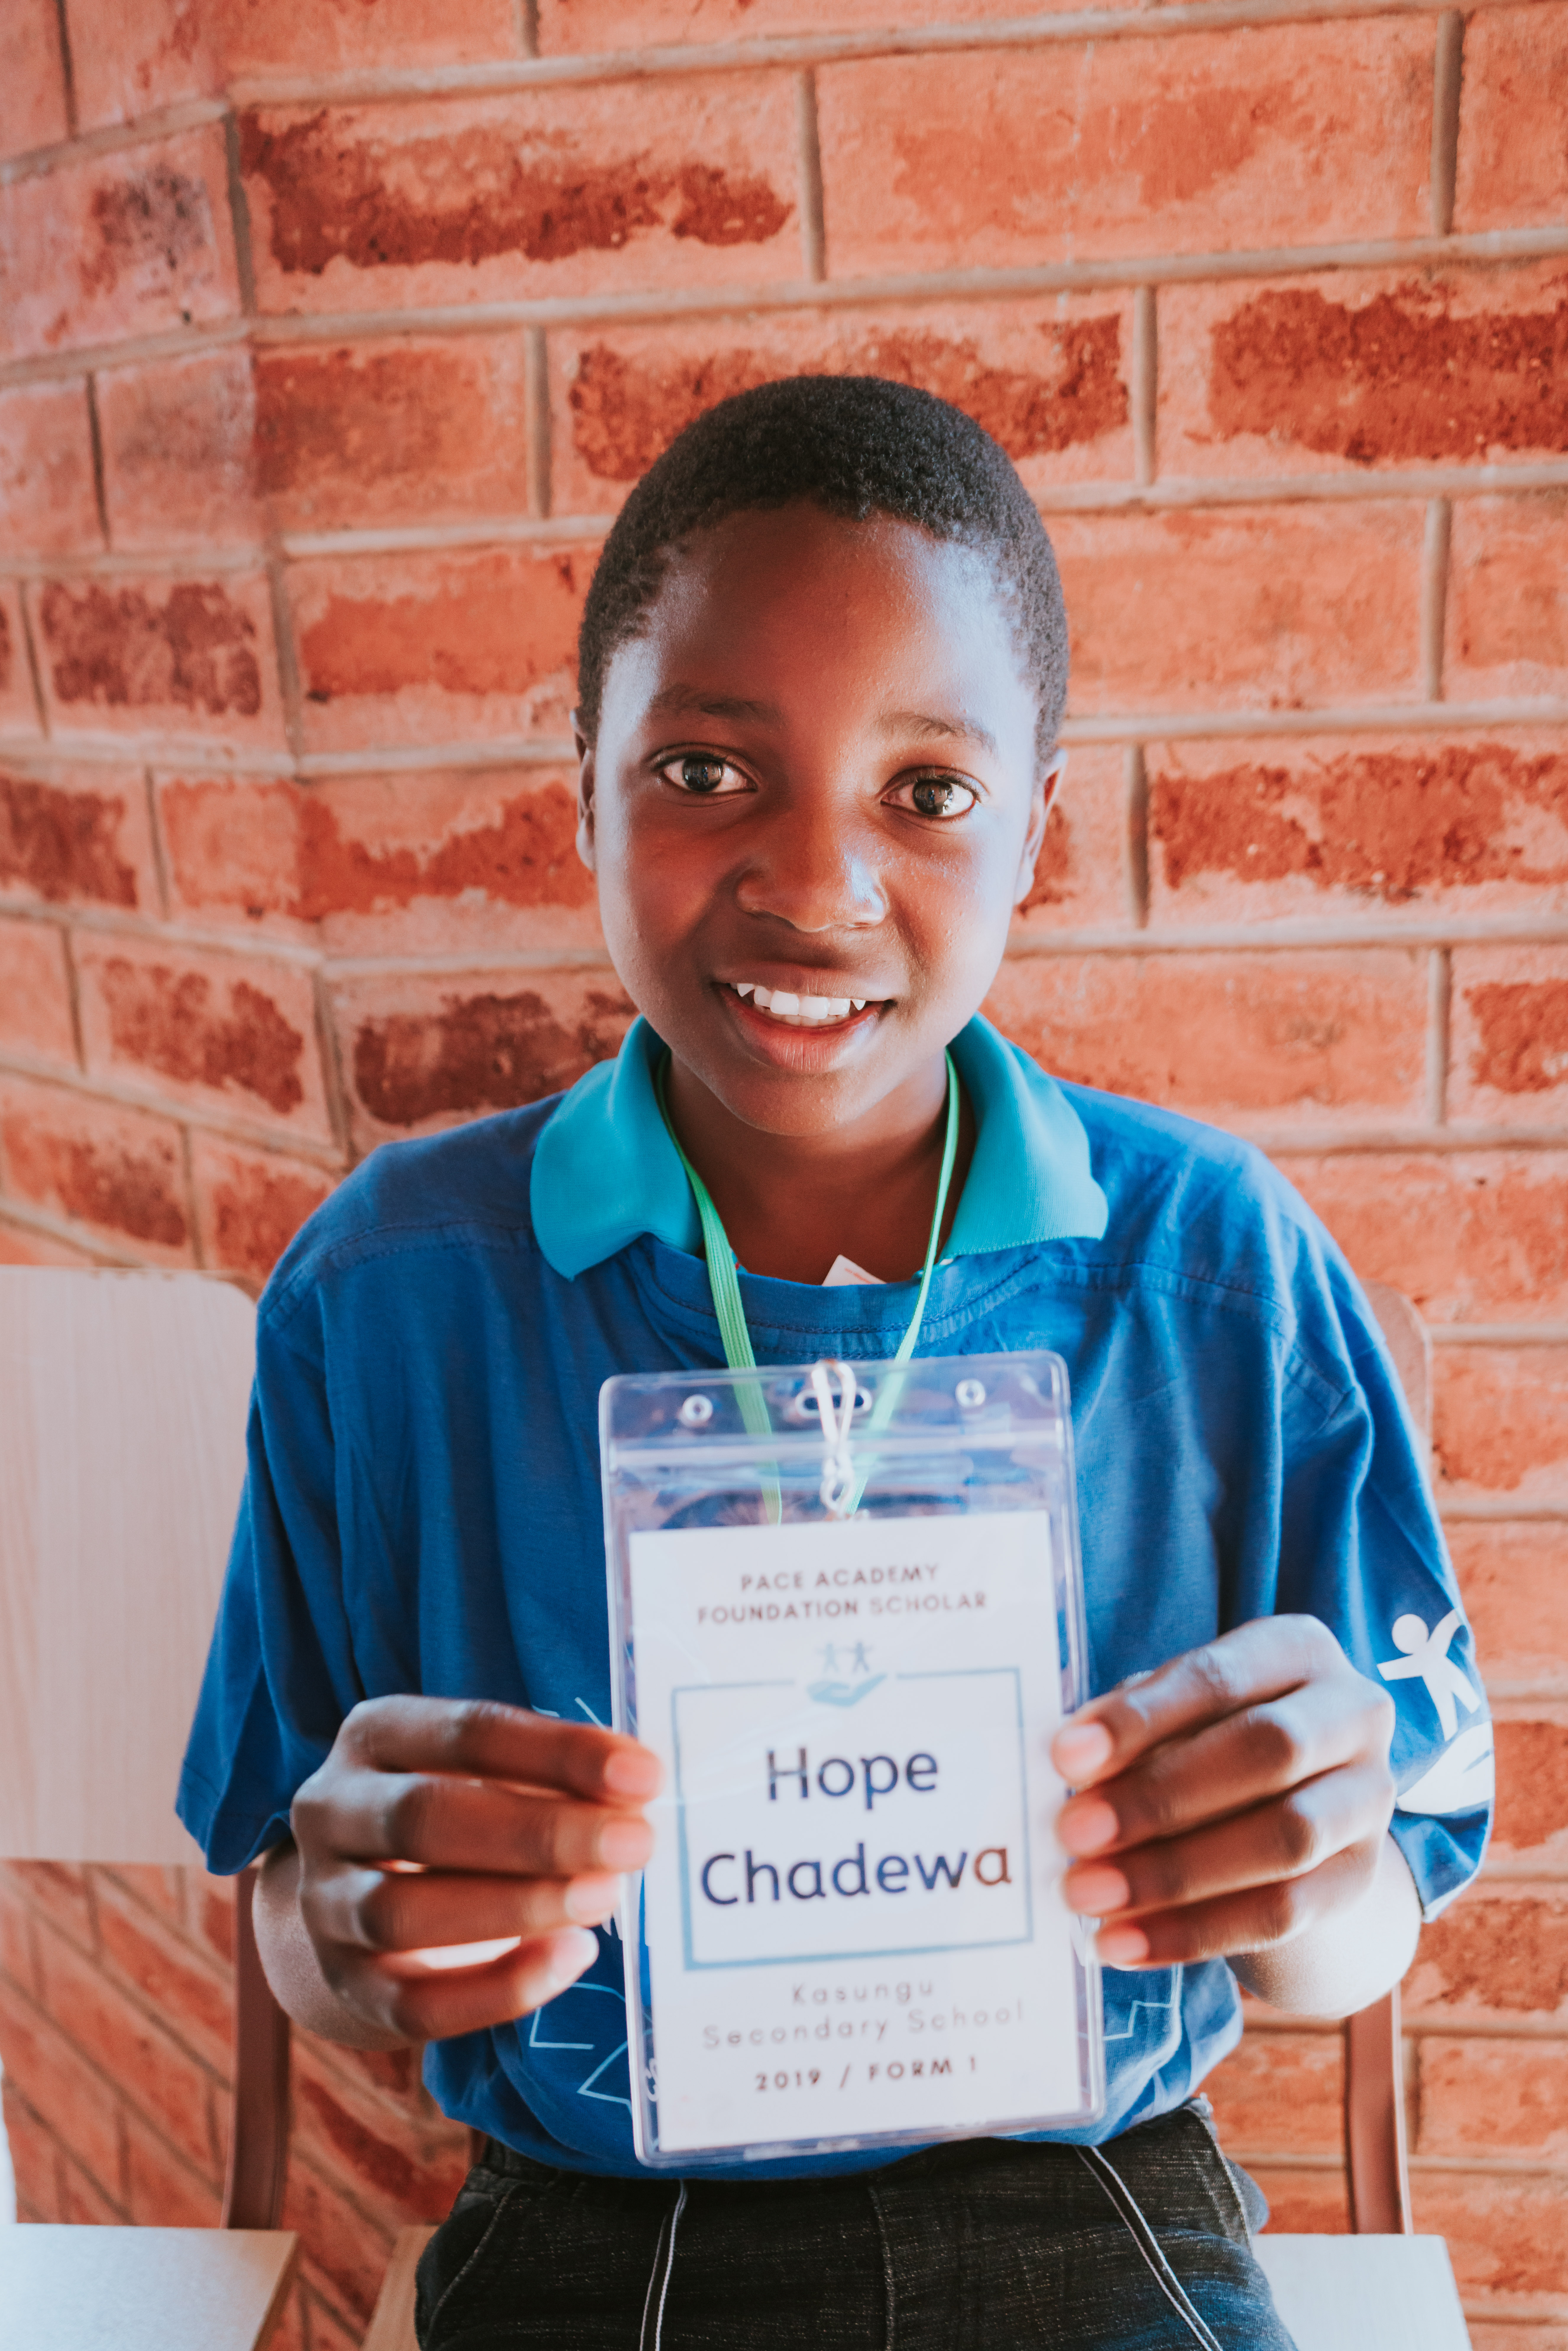 Hope Chadewa (Kasungu Secondary School)